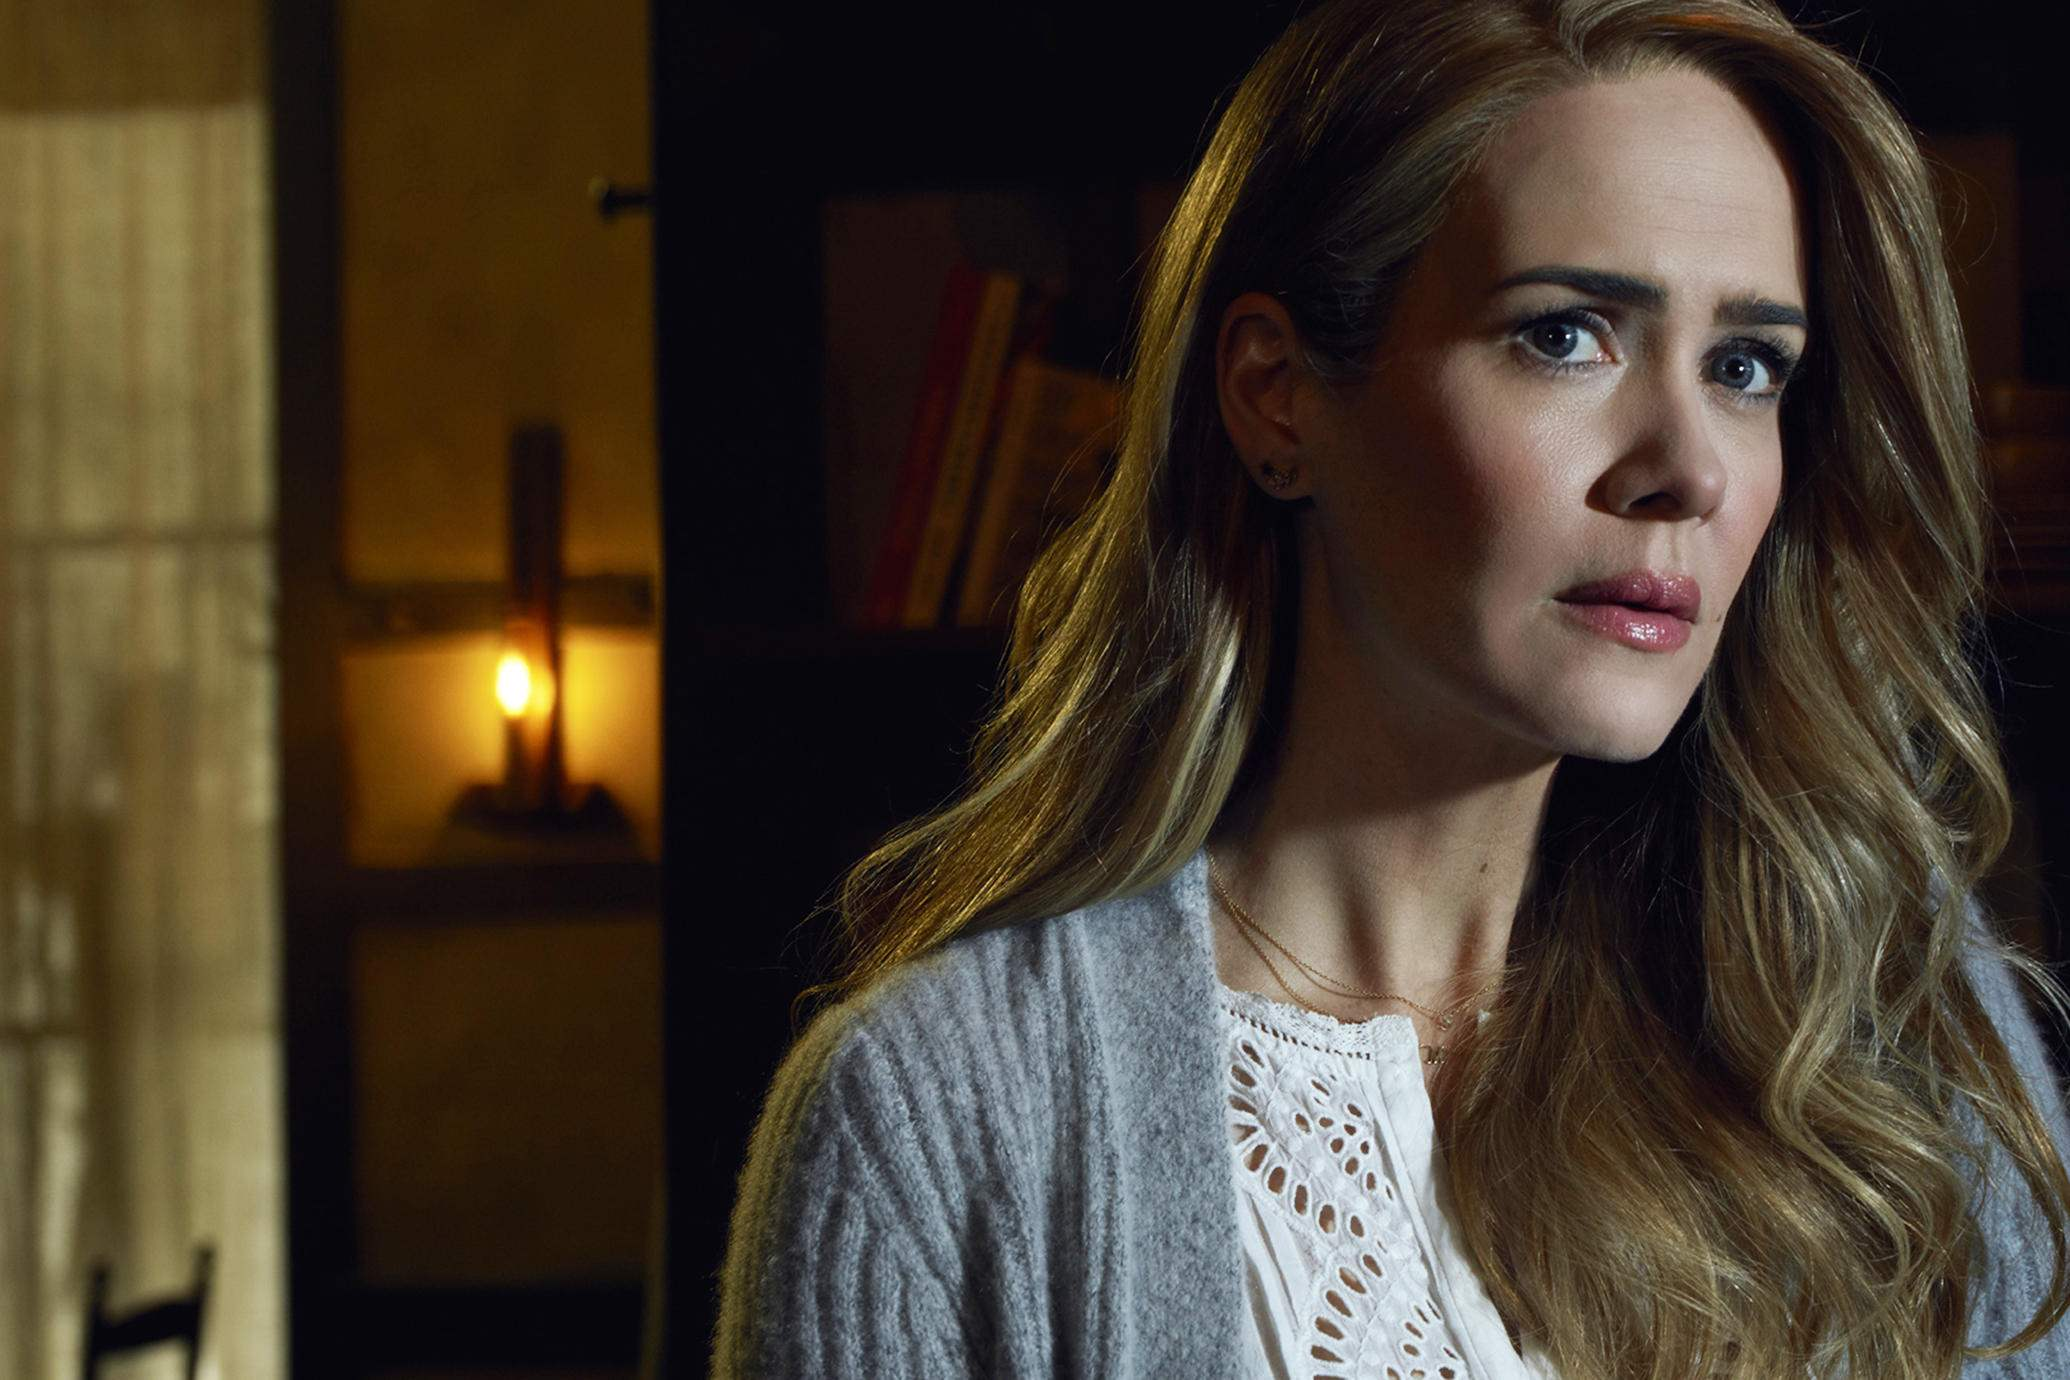 AMERICAN HORROR STORY: ROANOKE -- Pictured: Sarah Paulson as Shelby. CR: Frank Ockenfels/FX